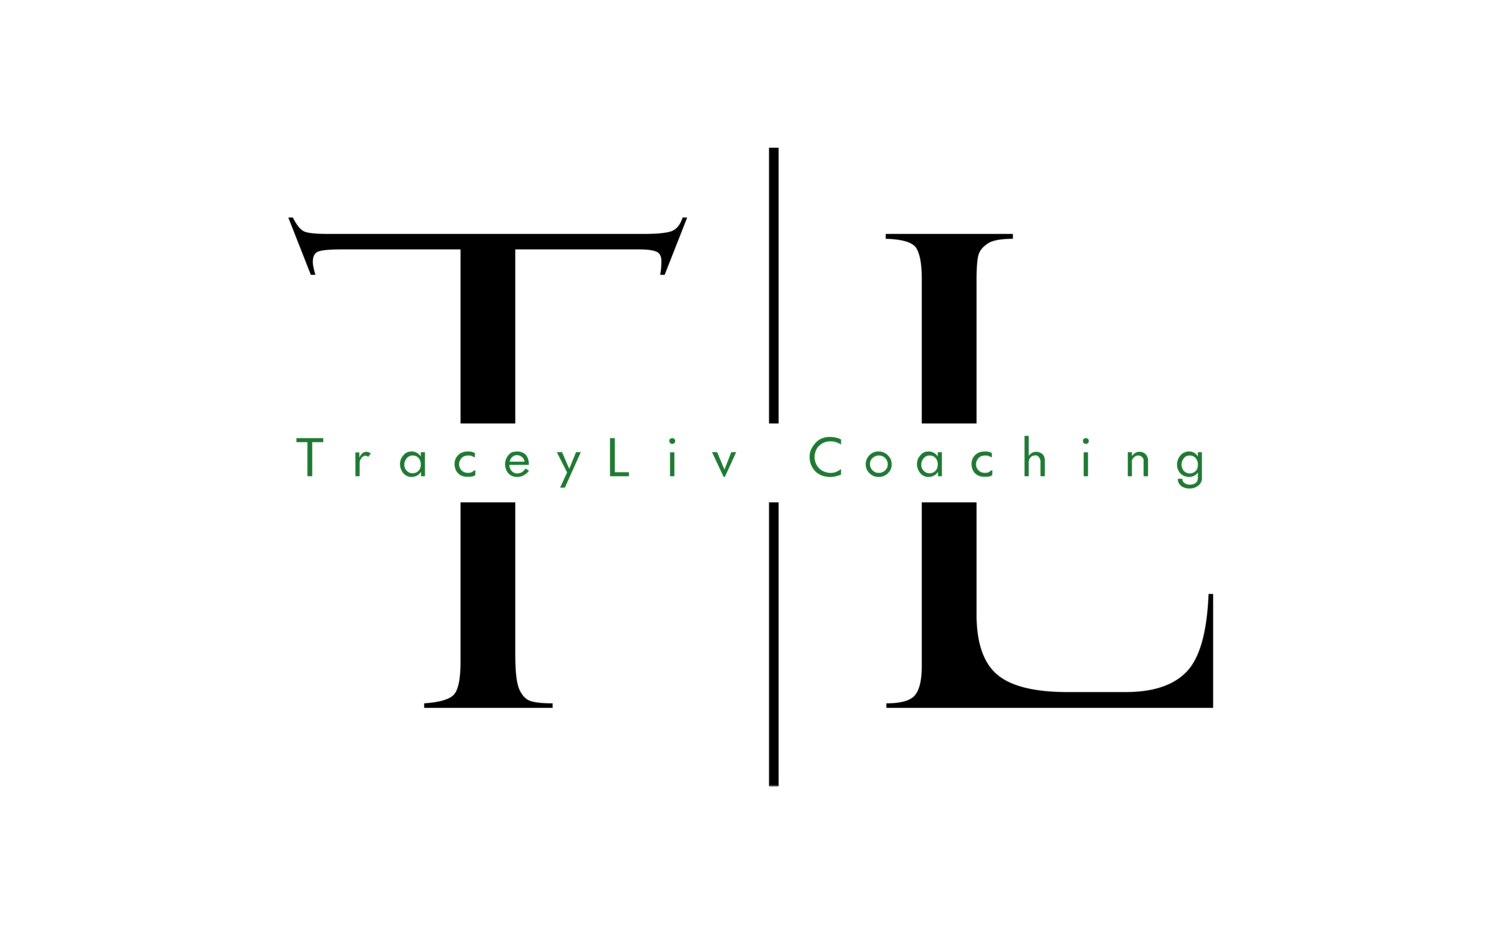 TraceyLiv | Coaching entrepreneurs to create soulful 6-7 figure businesses